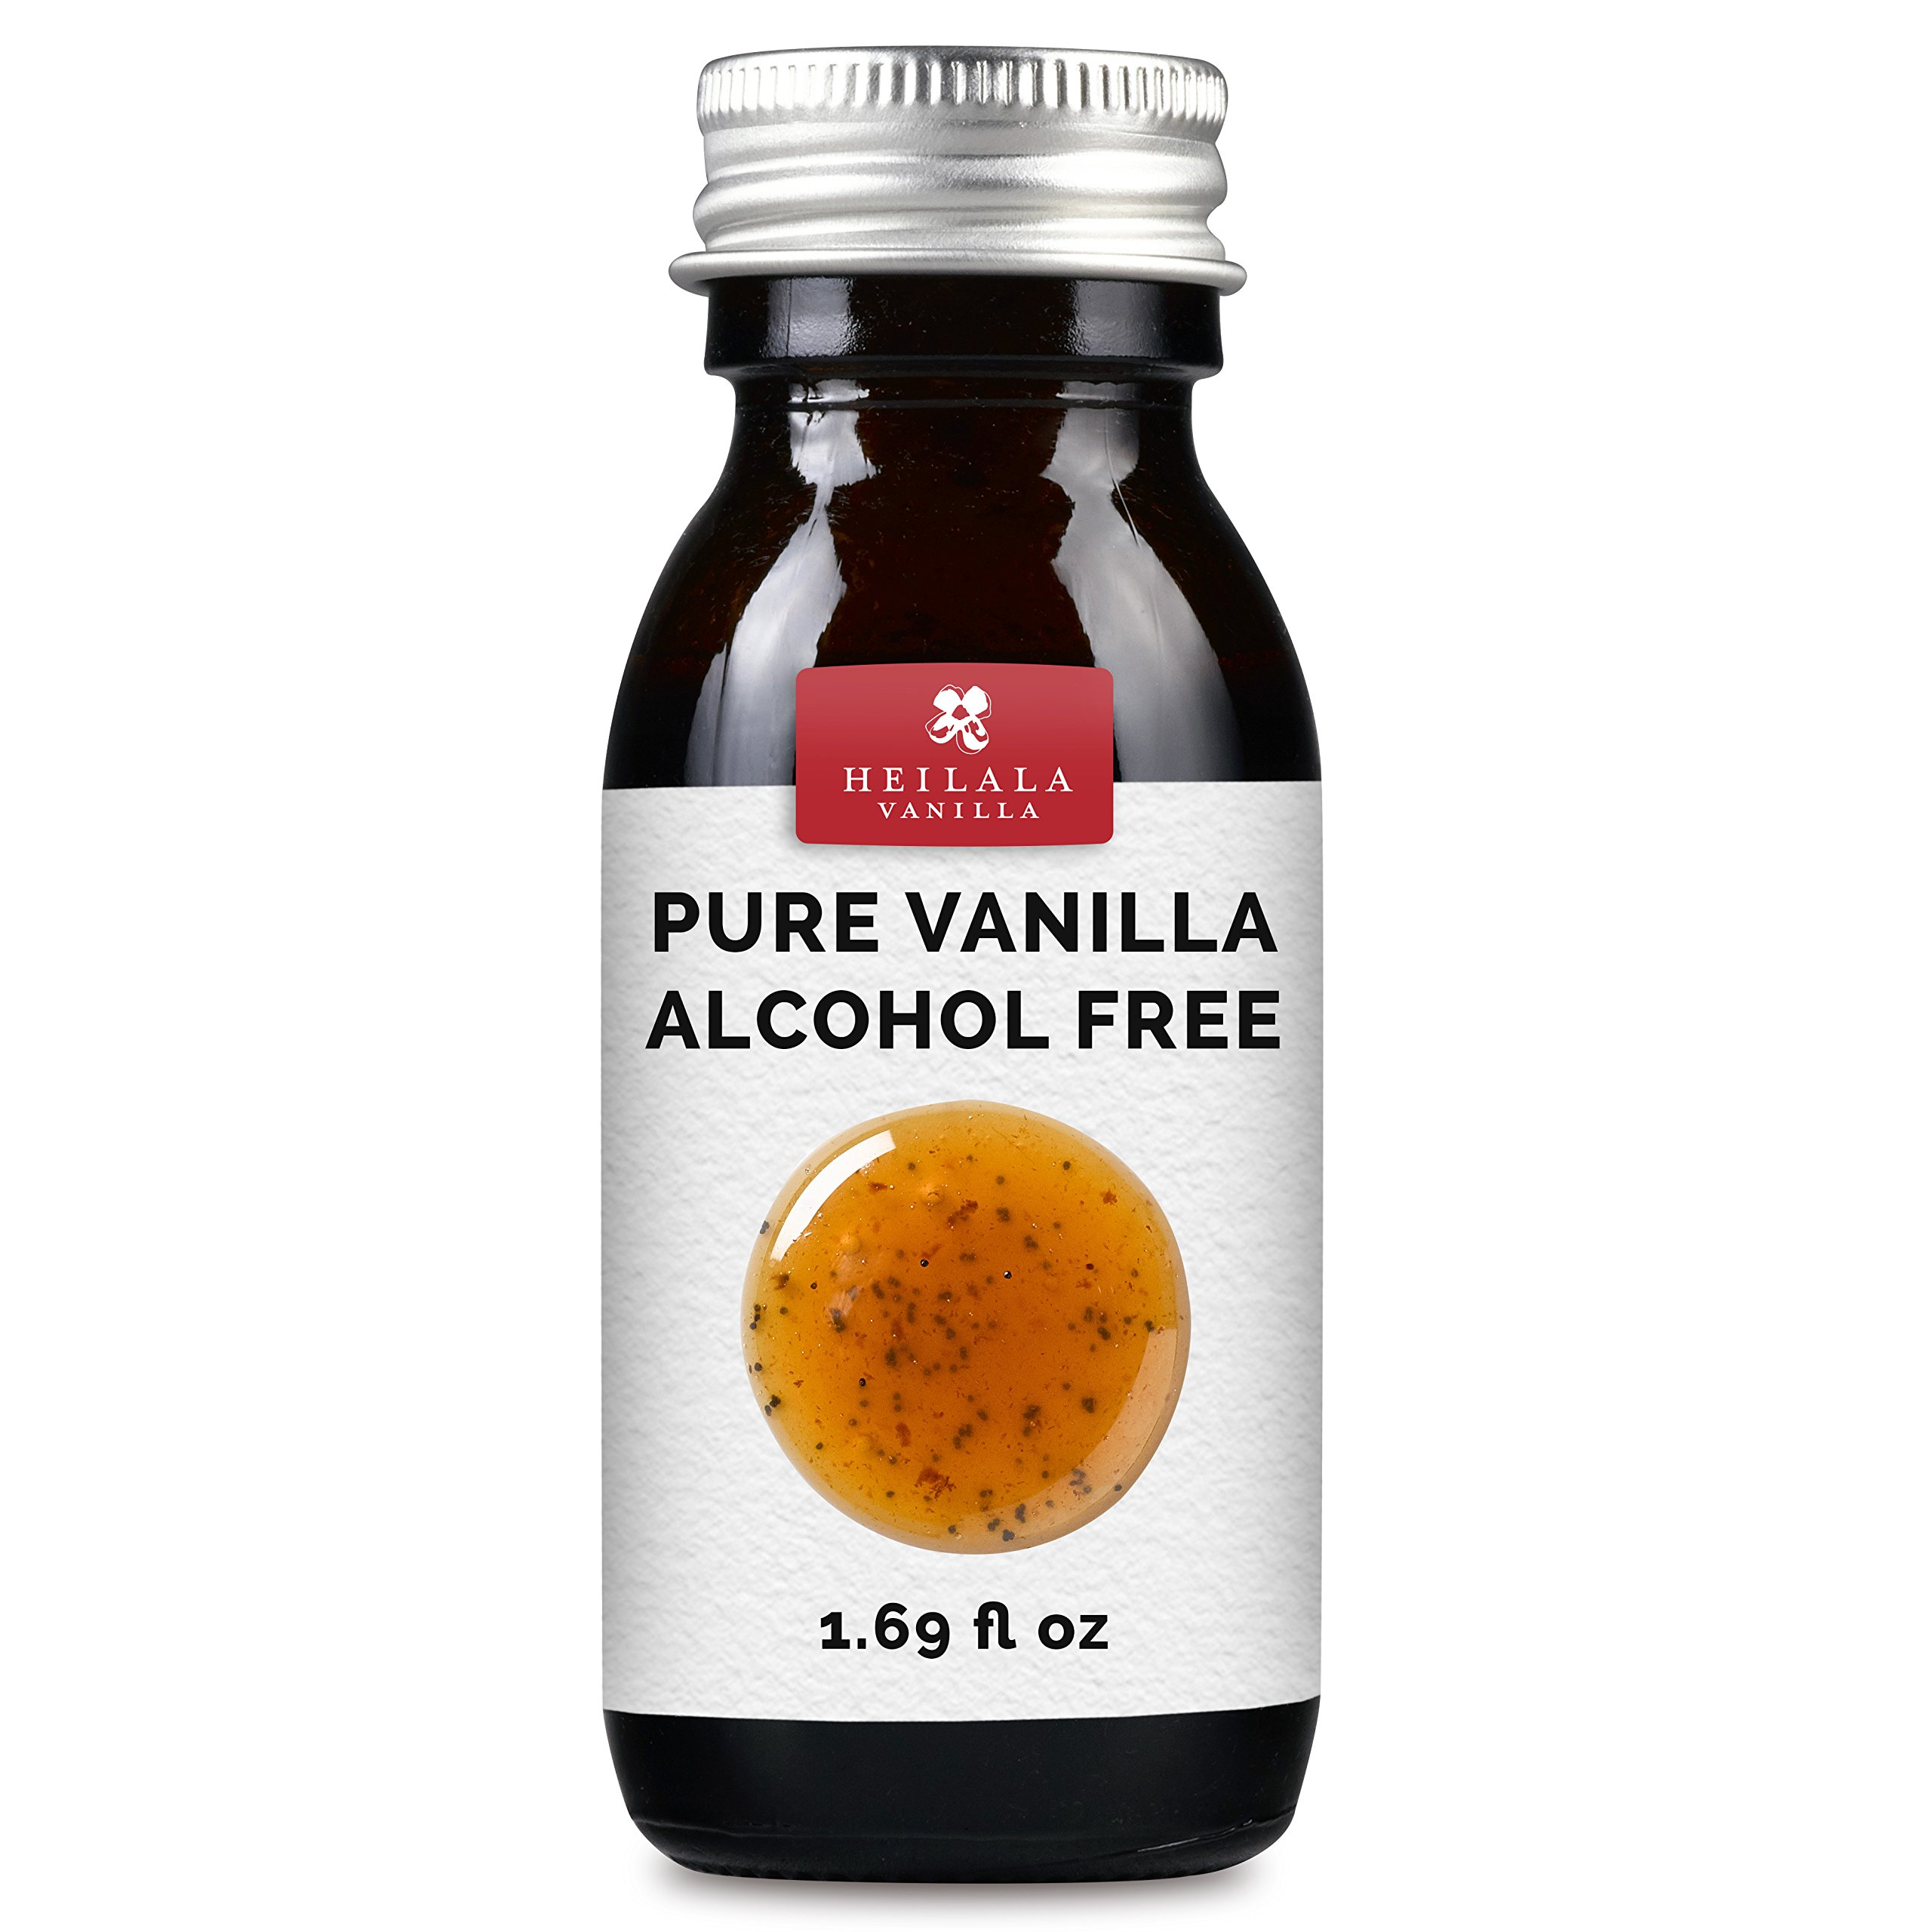 Alcohol Free Pure Vanilla Extract - Made with Real Vanilla Pod Seeds, Organically Grown Beans, All Natural, No Sugar, Vegan, Raw, Superior to Mexican, Tahitian or Madagascan Varieties